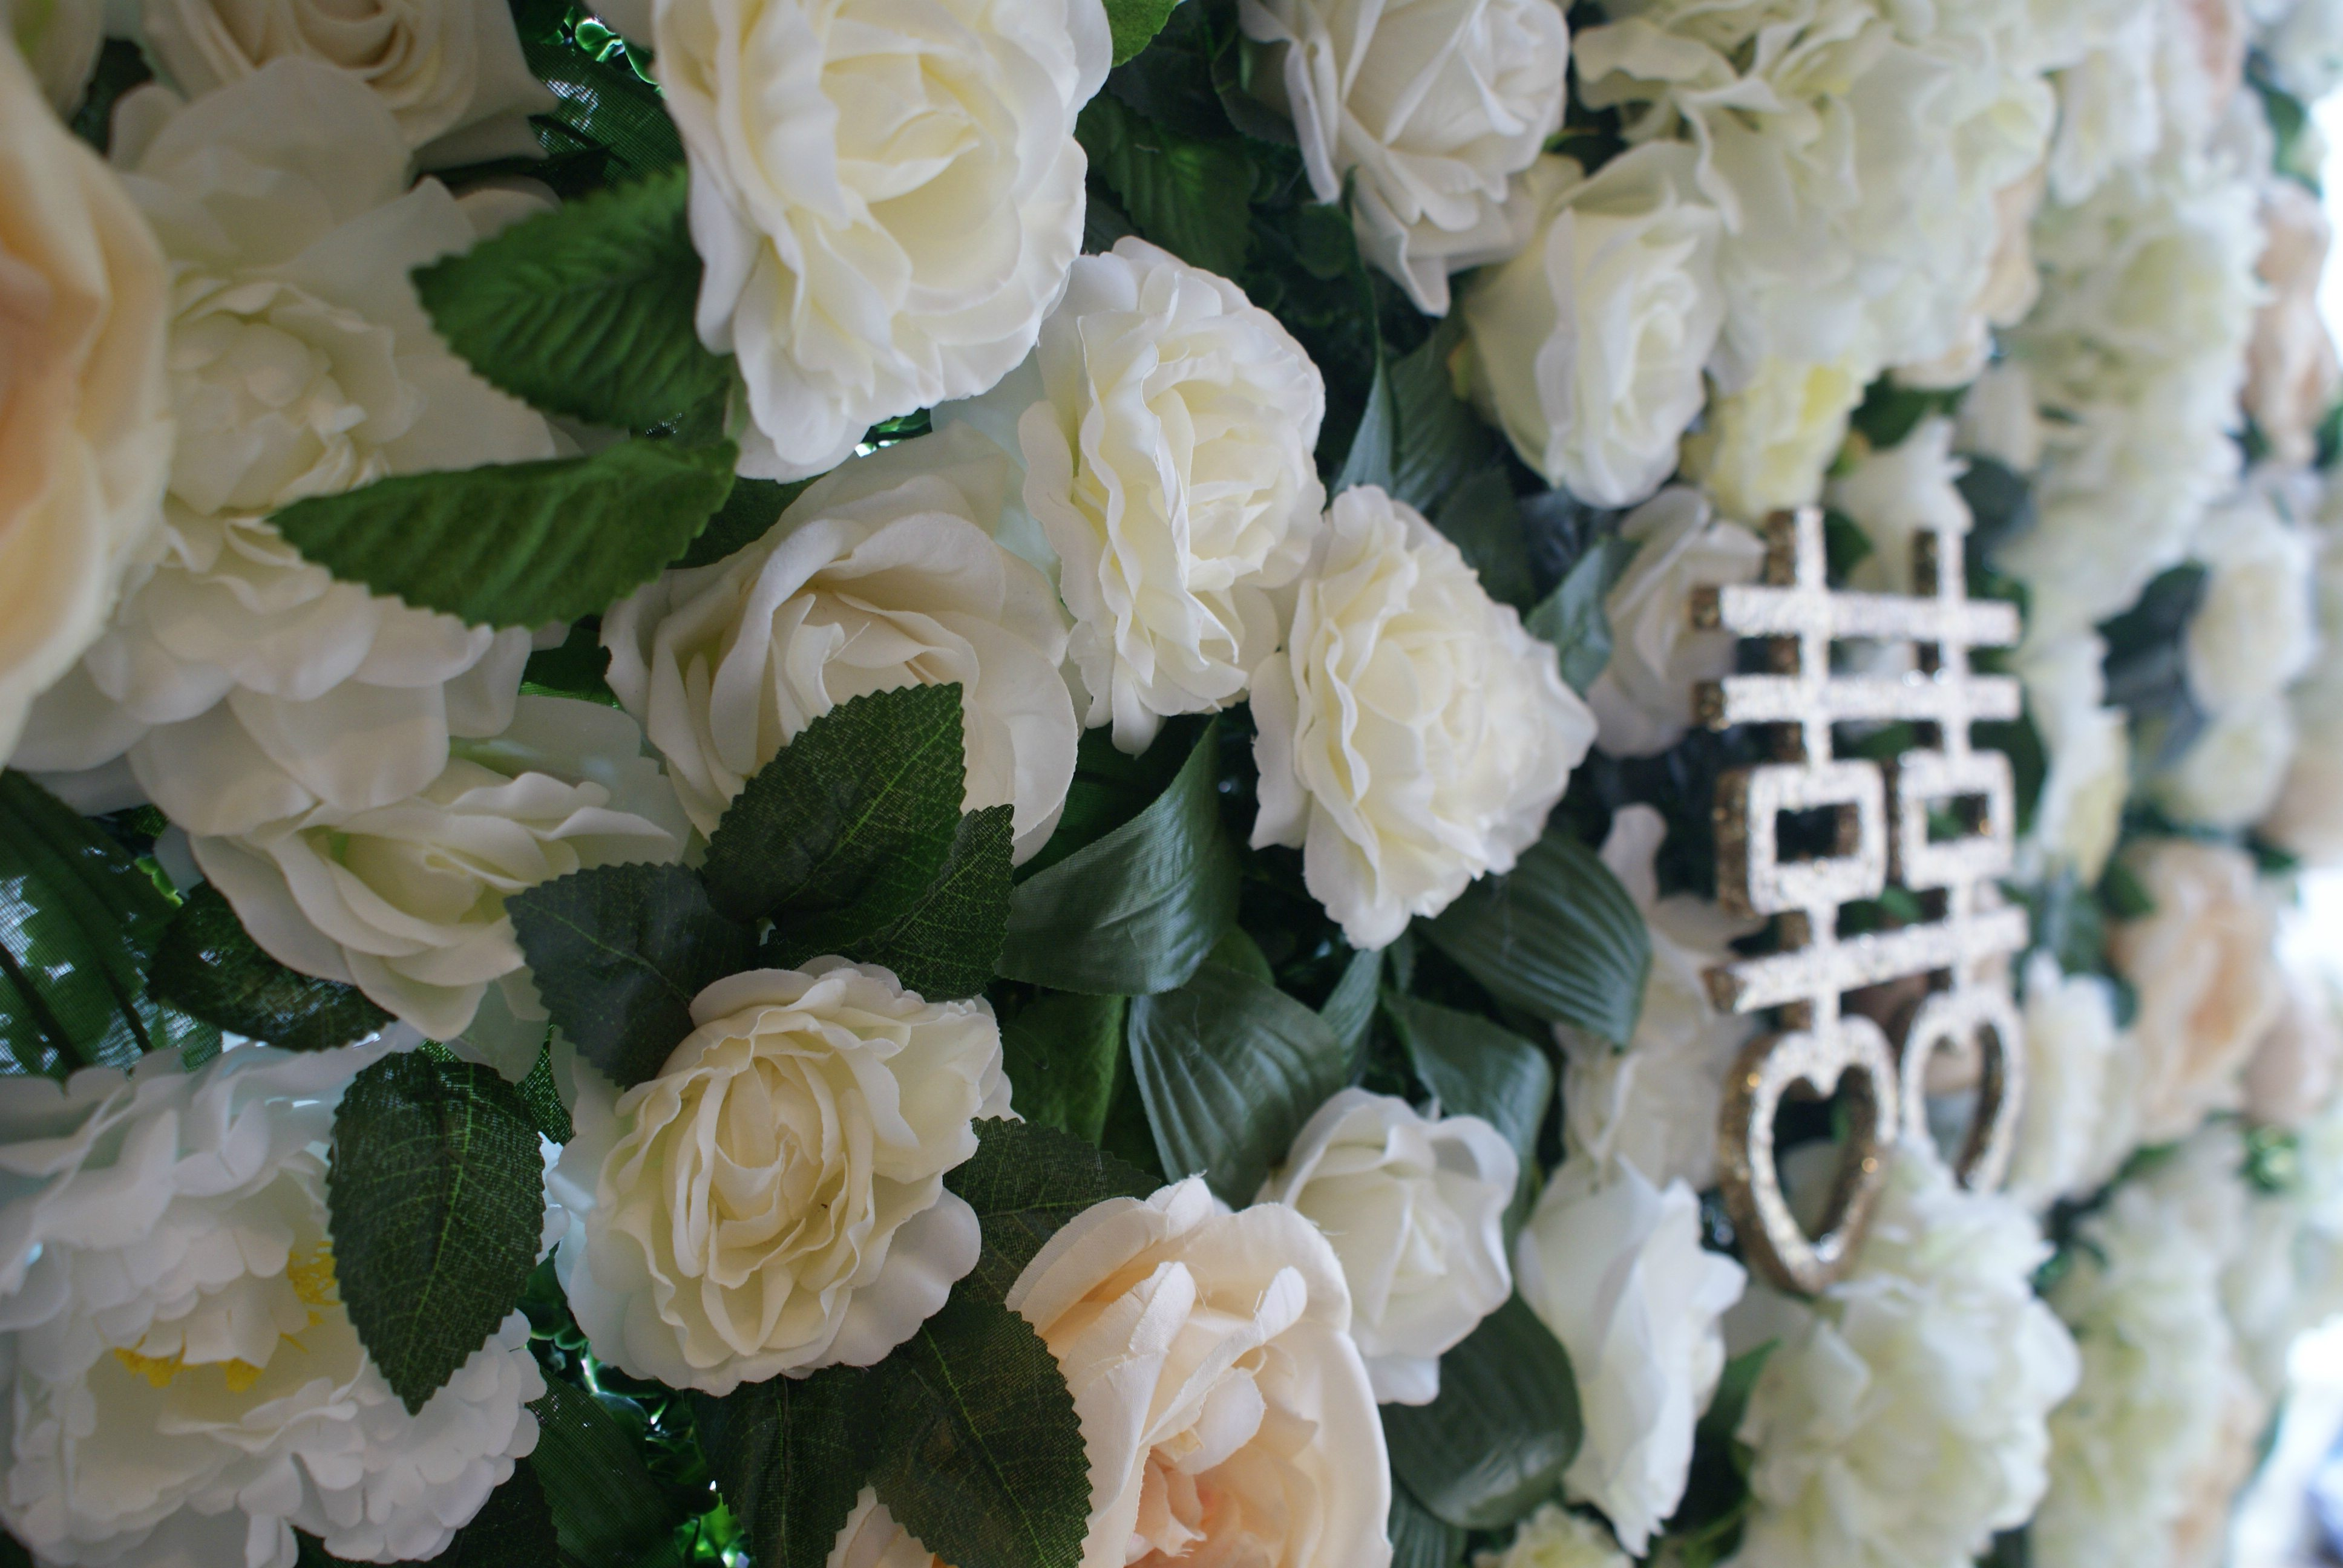 How To Get A Cheap Flower Wall For Your Wedding The Flower Wall